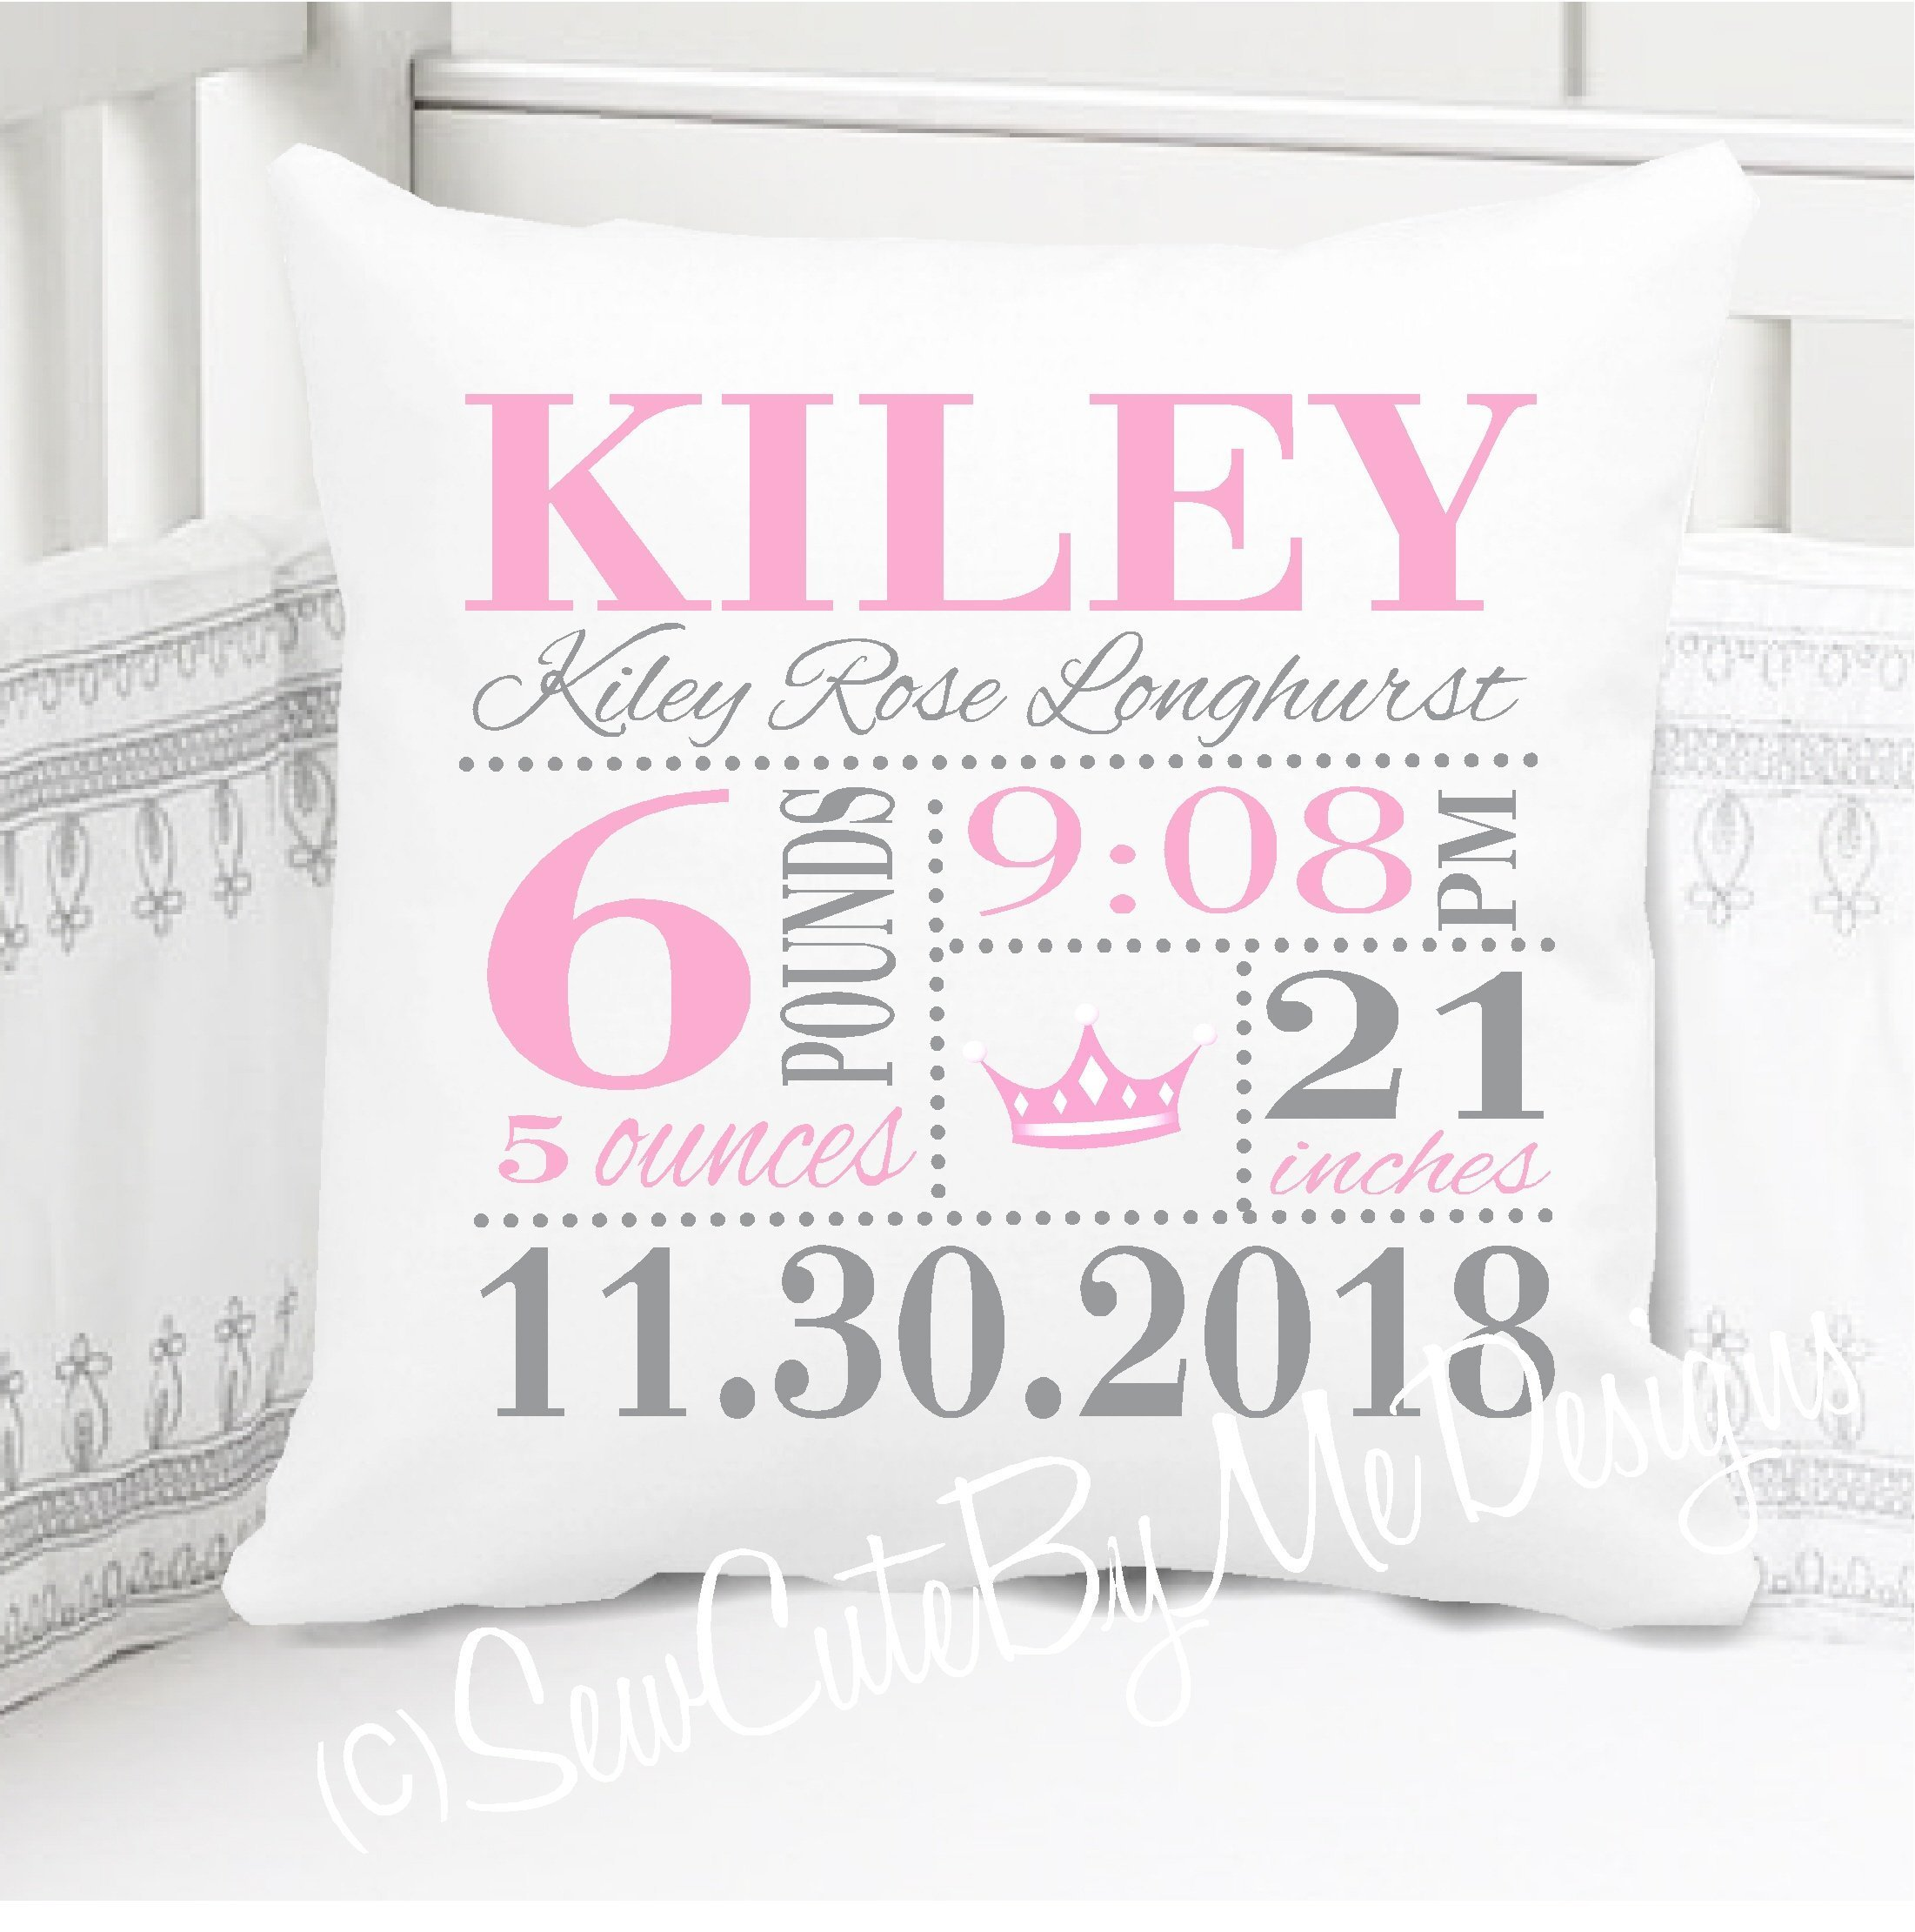 Sew Cute by Me Designs Birth Announcement Pillow for Baby Girls Pink Princess Nursery in Pink and Grey - Includes Personalized Pillowcase and Pillow Insert 14'' x 14'' or 16'' x 16''